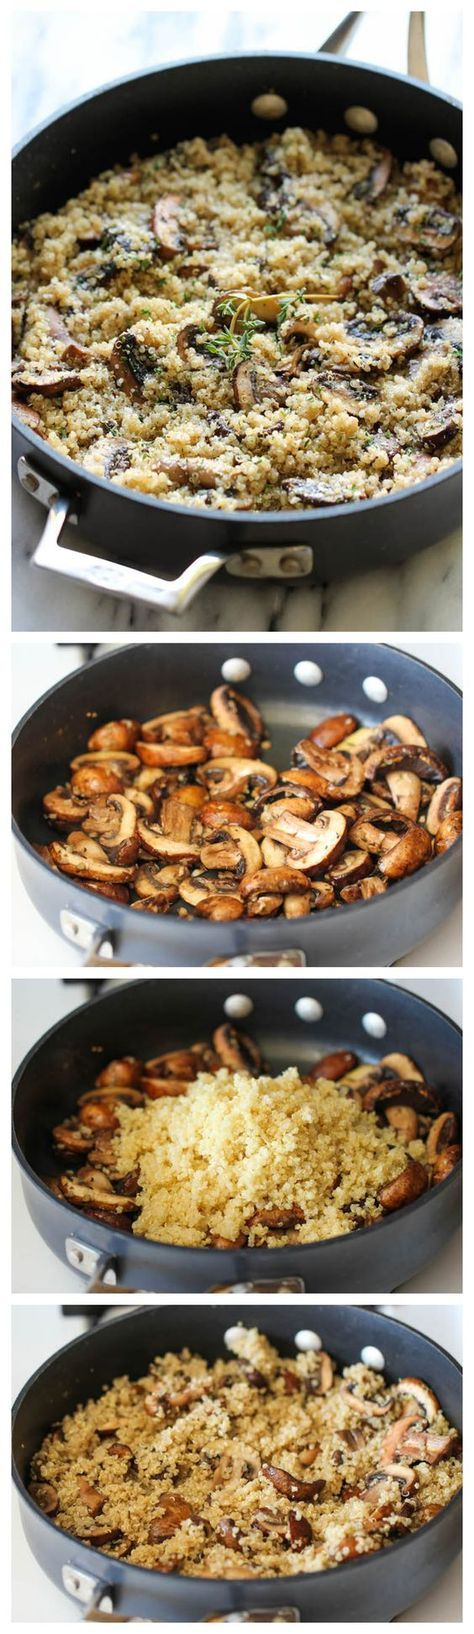 Garlic Mushroom Quinoa - An easy, healthy side dish that you'll want to make with every single meal! leave out parm or sub for nutritional yeast for vegan.